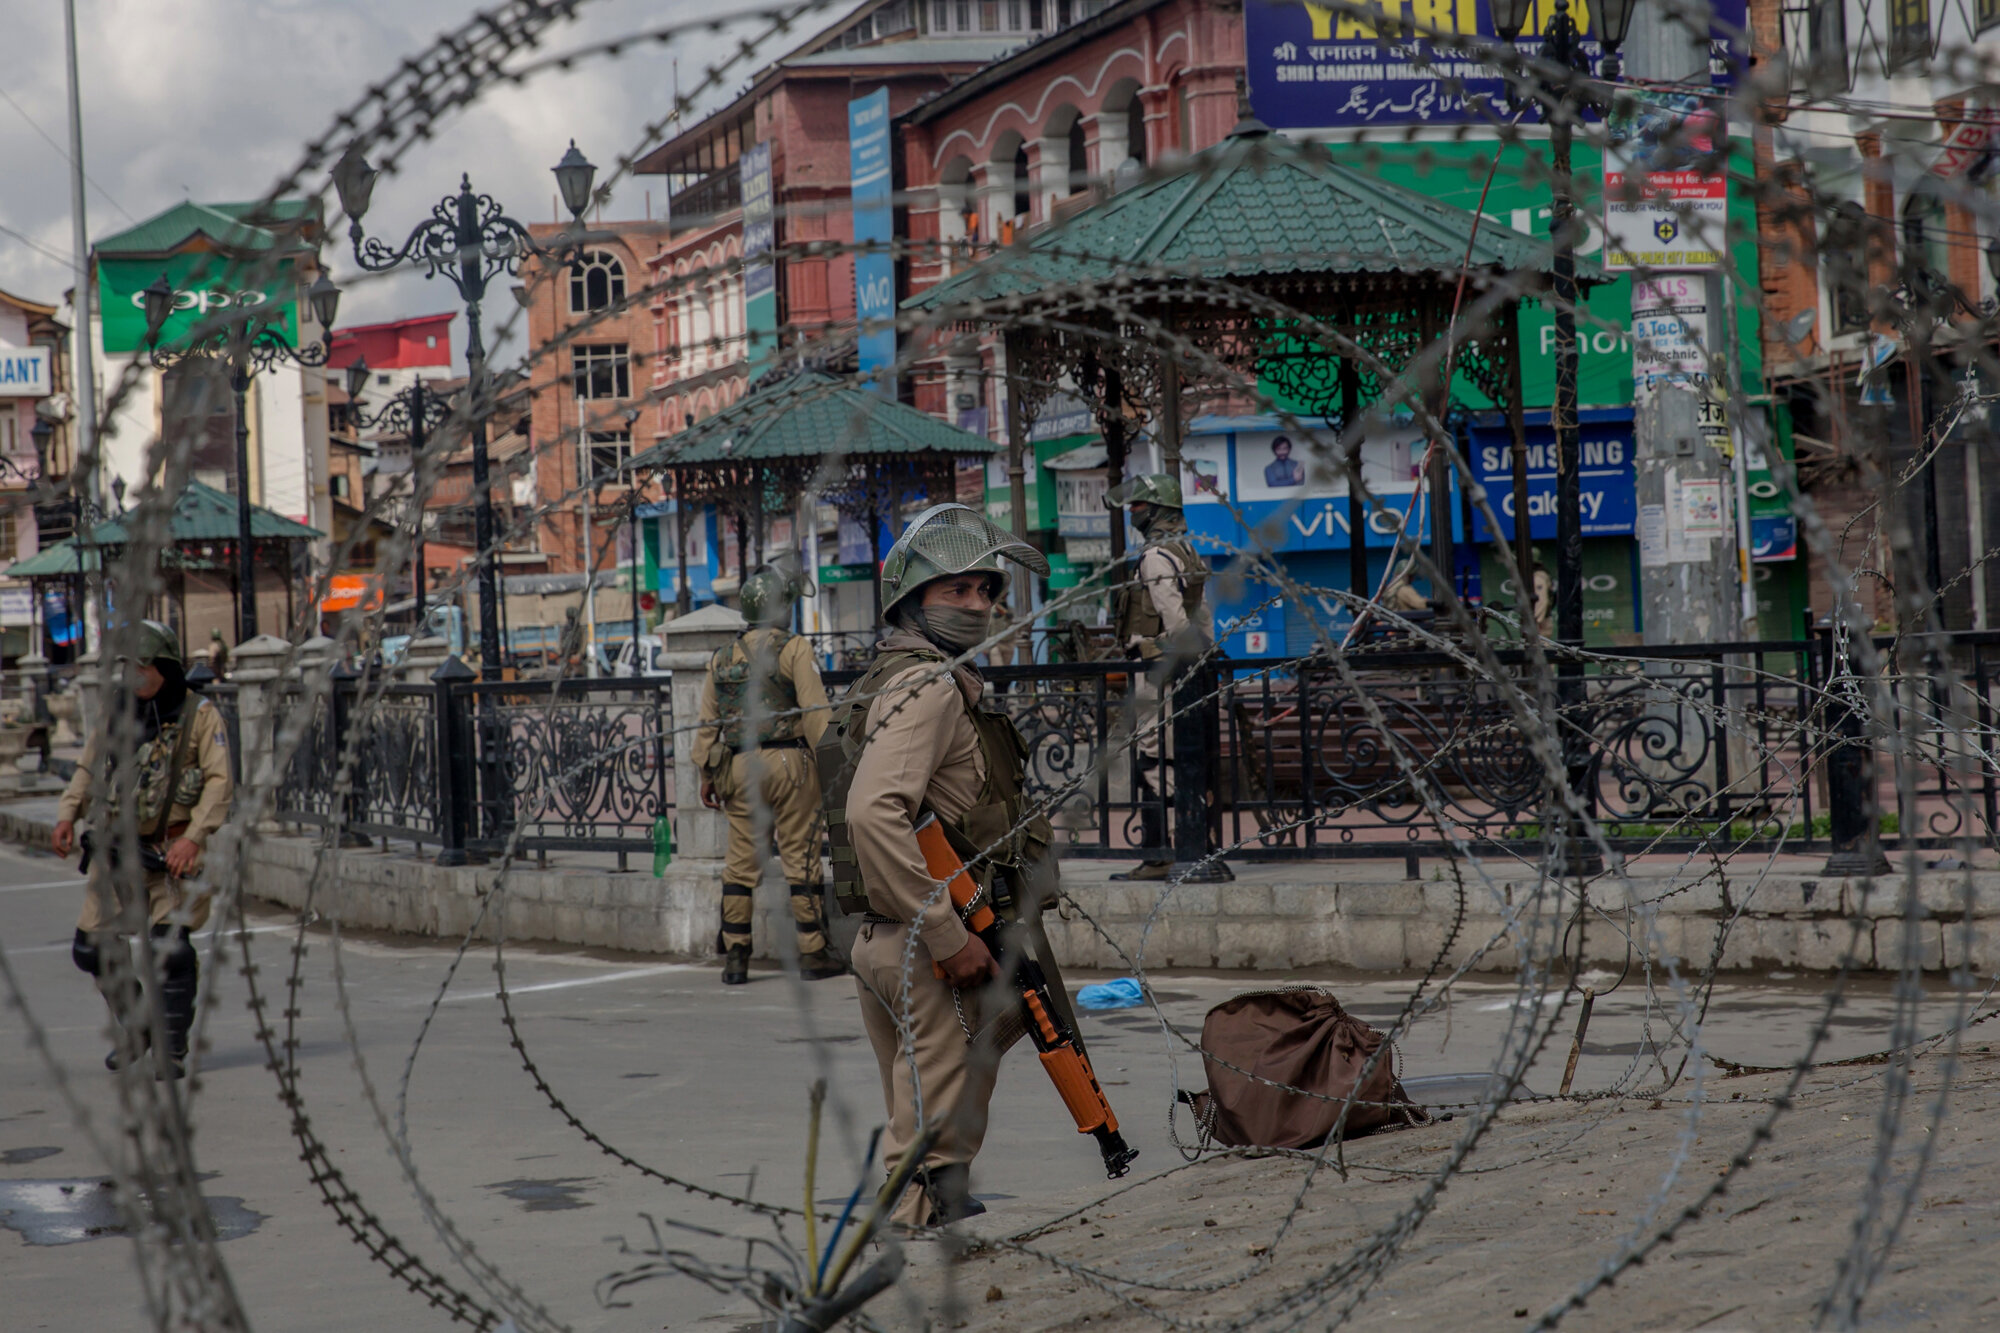 Indian Paramilitary soldiers are seen through barbed wire during strike in Srinagar, Indian controlled Kashmir, Saturday, May 19, 2018. (AP Photo/Dar Yasin)